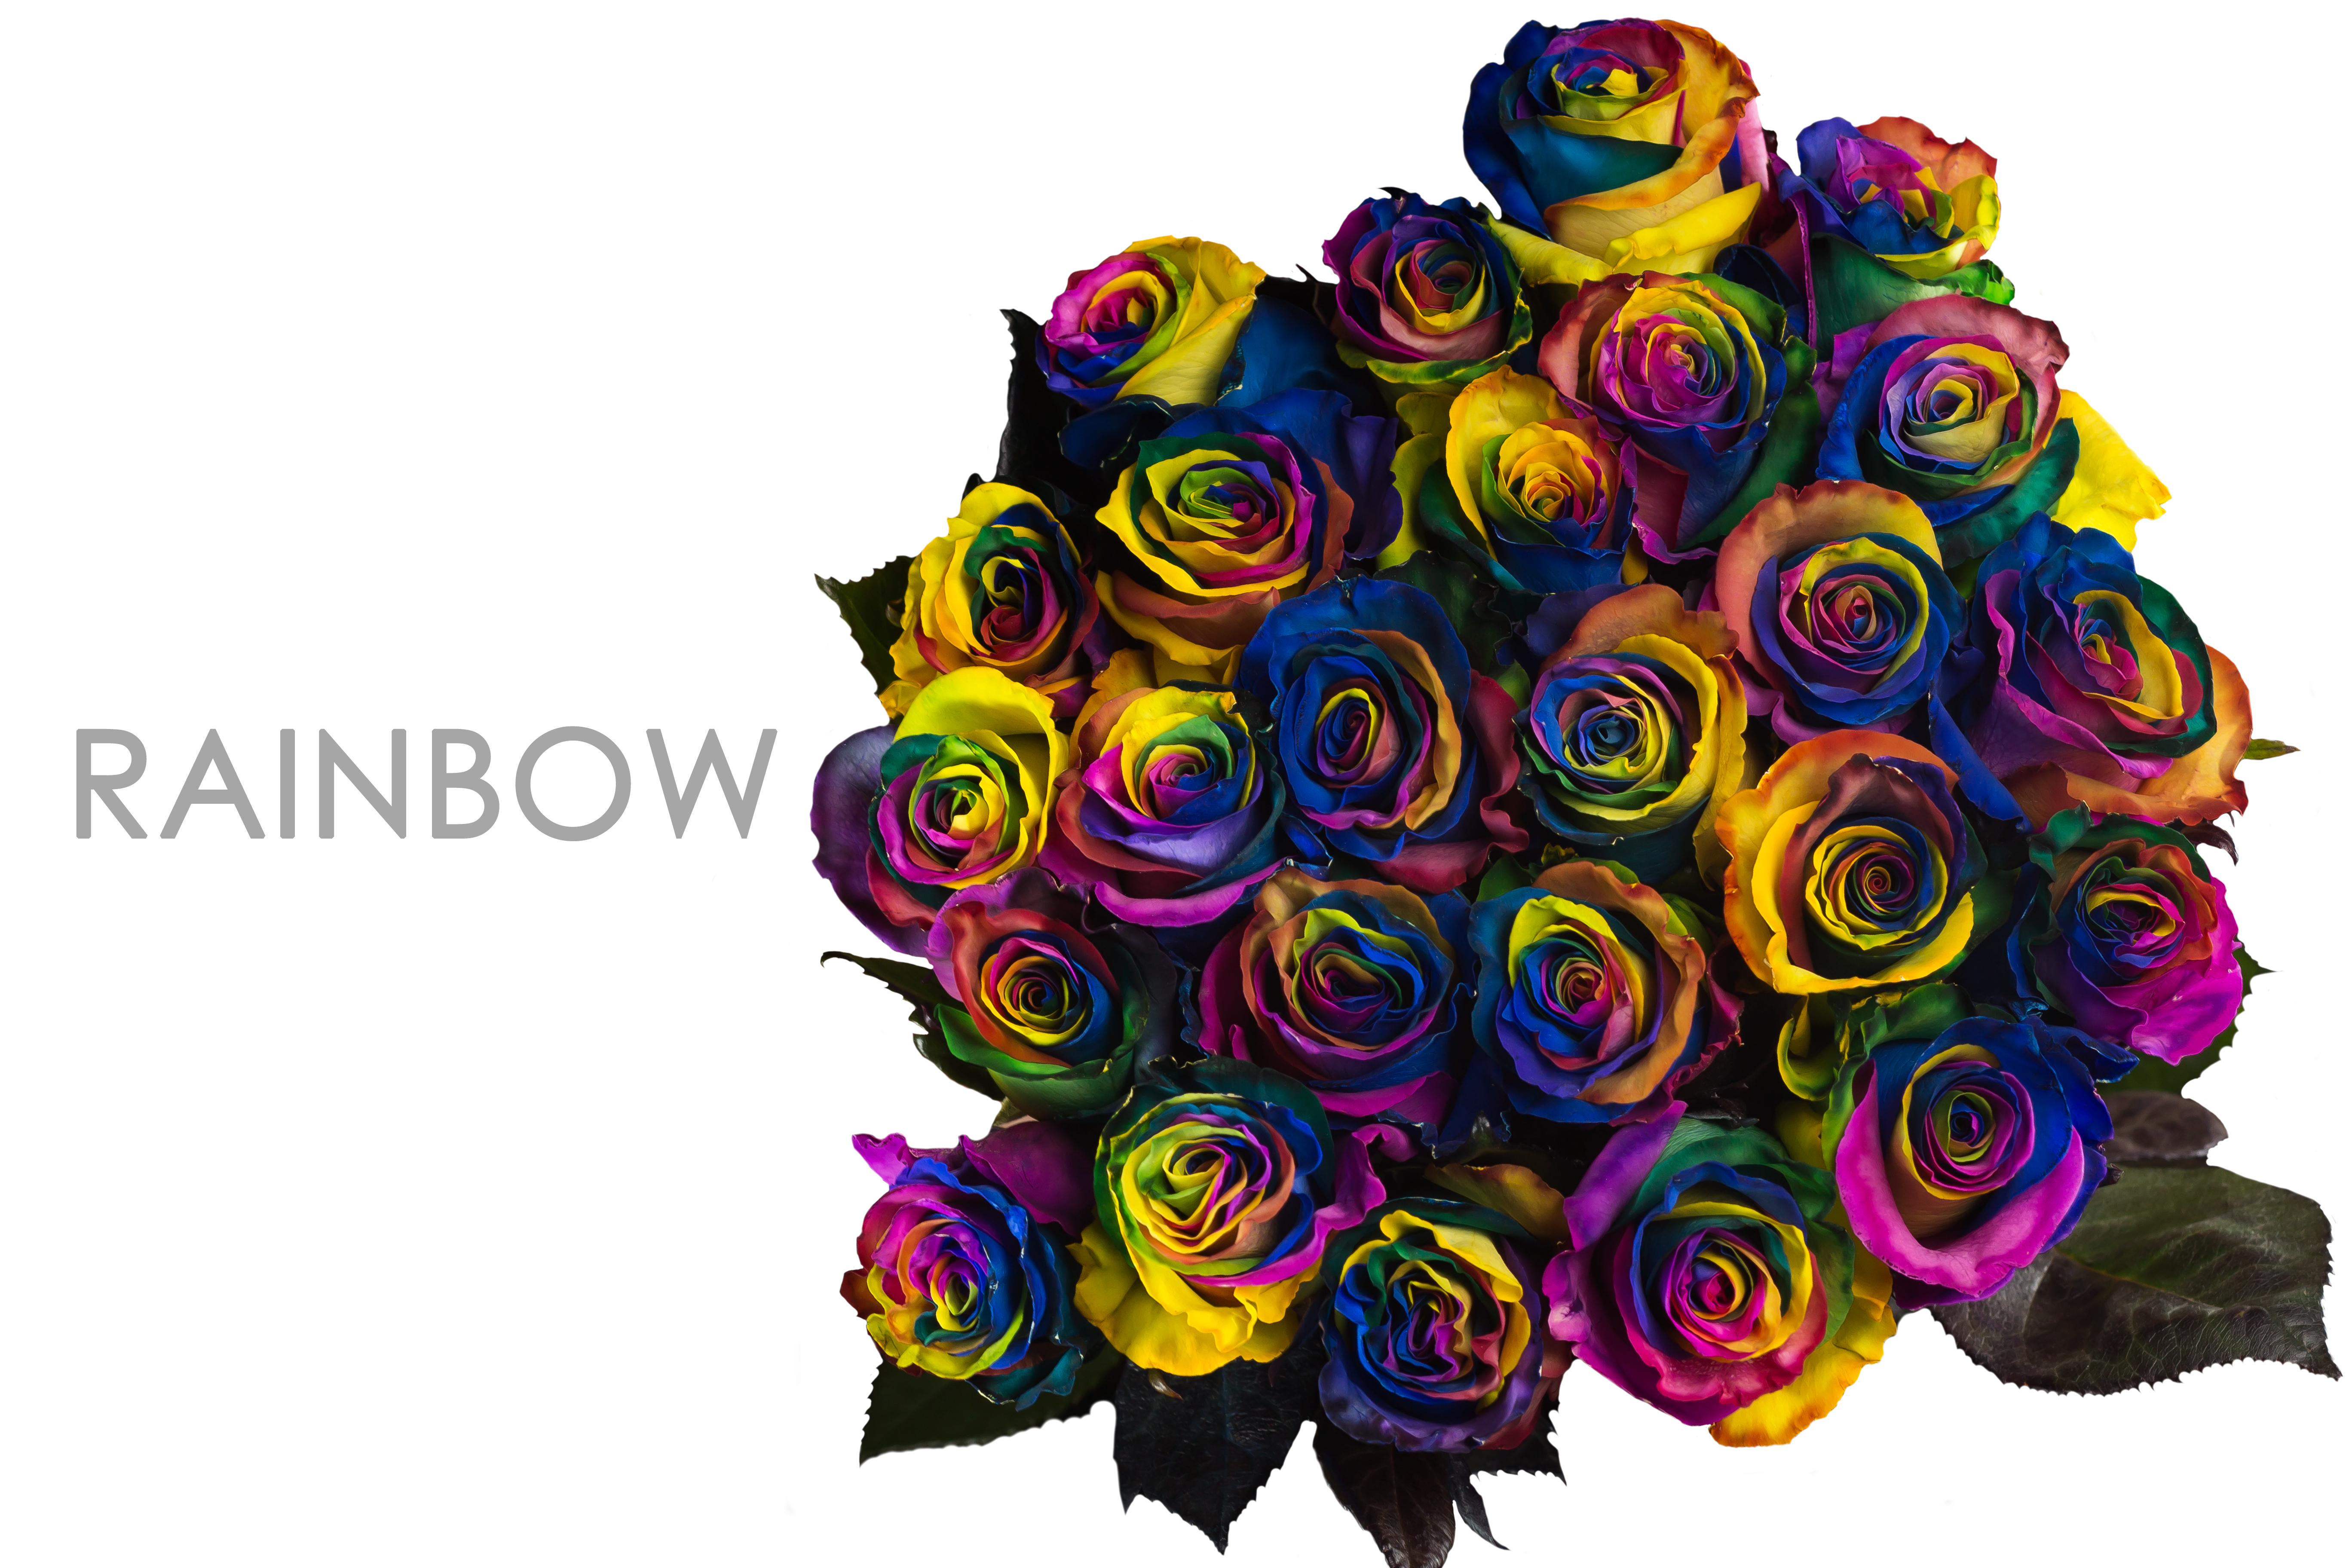 RAINBOW-CAPTION-BOUQUET